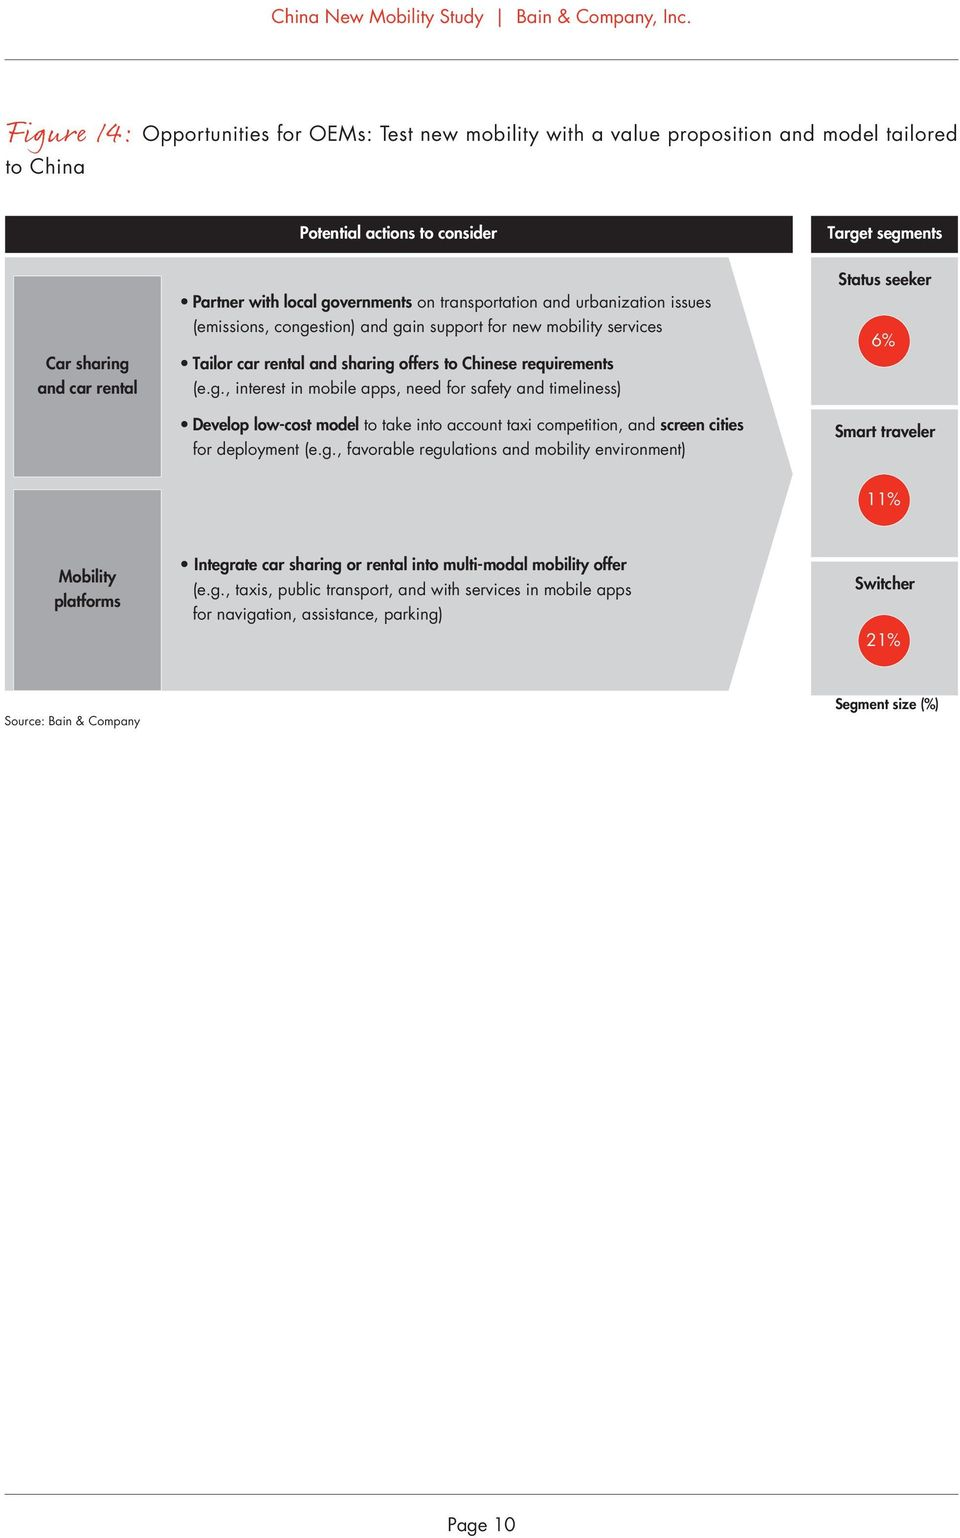 g., favorable regulations and mobility environment) Status seeker 6% Smart traveler 11% Mobility platforms Integrate car sharing or rental into multi-modal mobility offer (e.g., taxis, public transport, and with services in mobile apps for navigation, assistance, parking) 21% Source: Bain & Company Segment size (%) Page 1